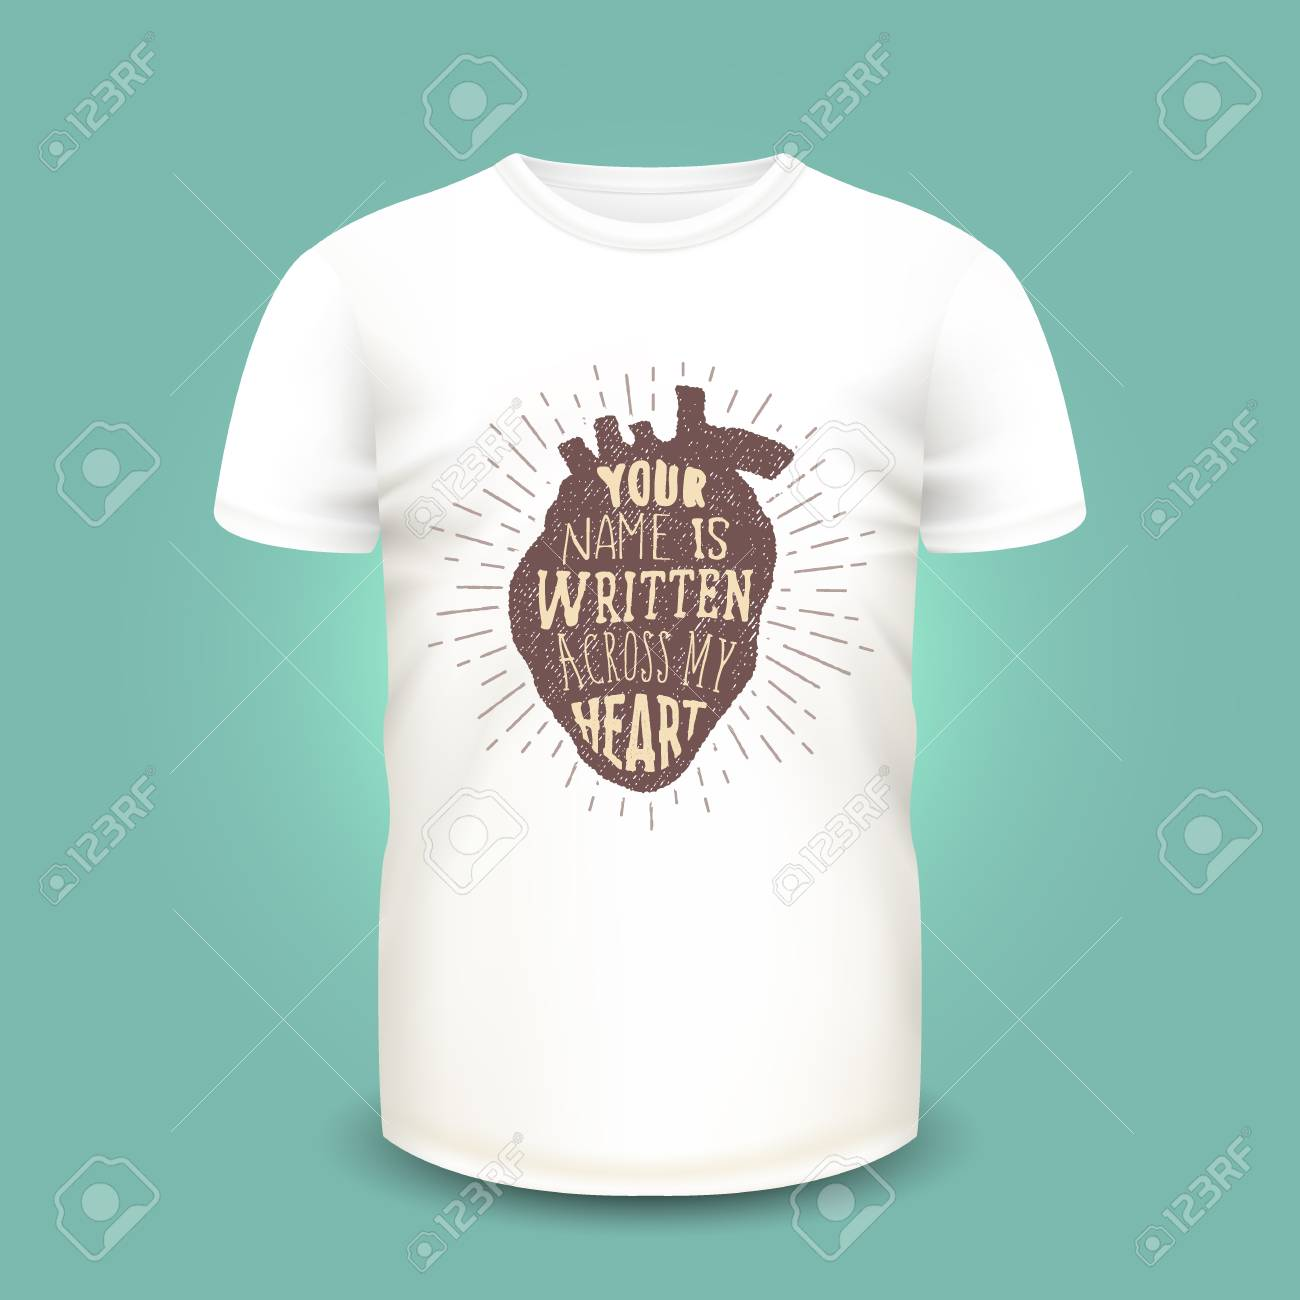 T Shirt Print Design With Human Heart Silhouette And Lettering